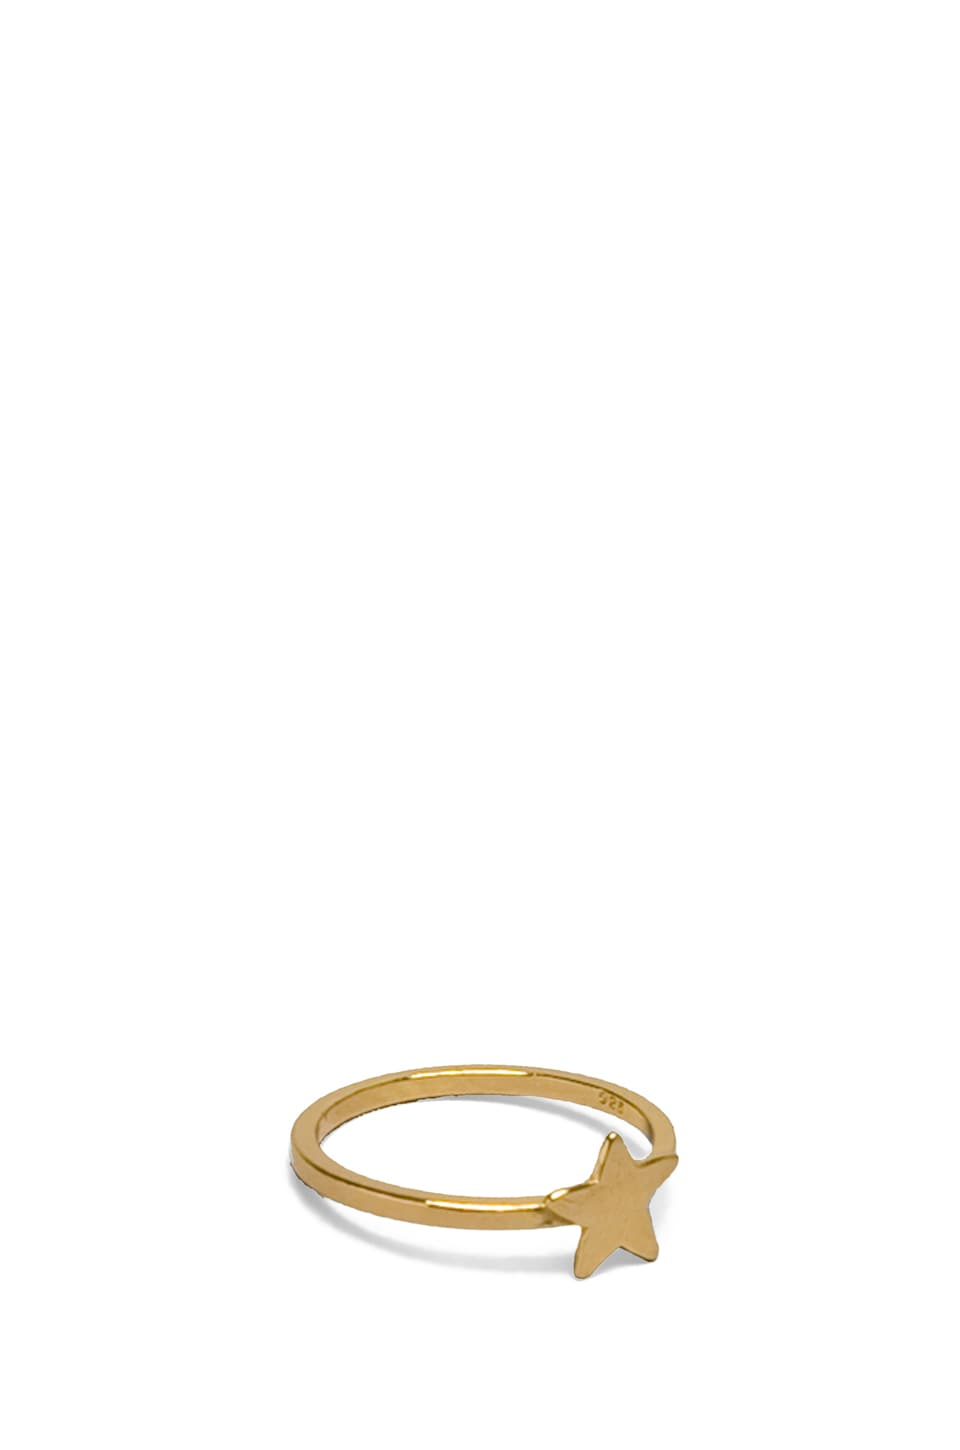 gorjana Star Ring Small in Gold